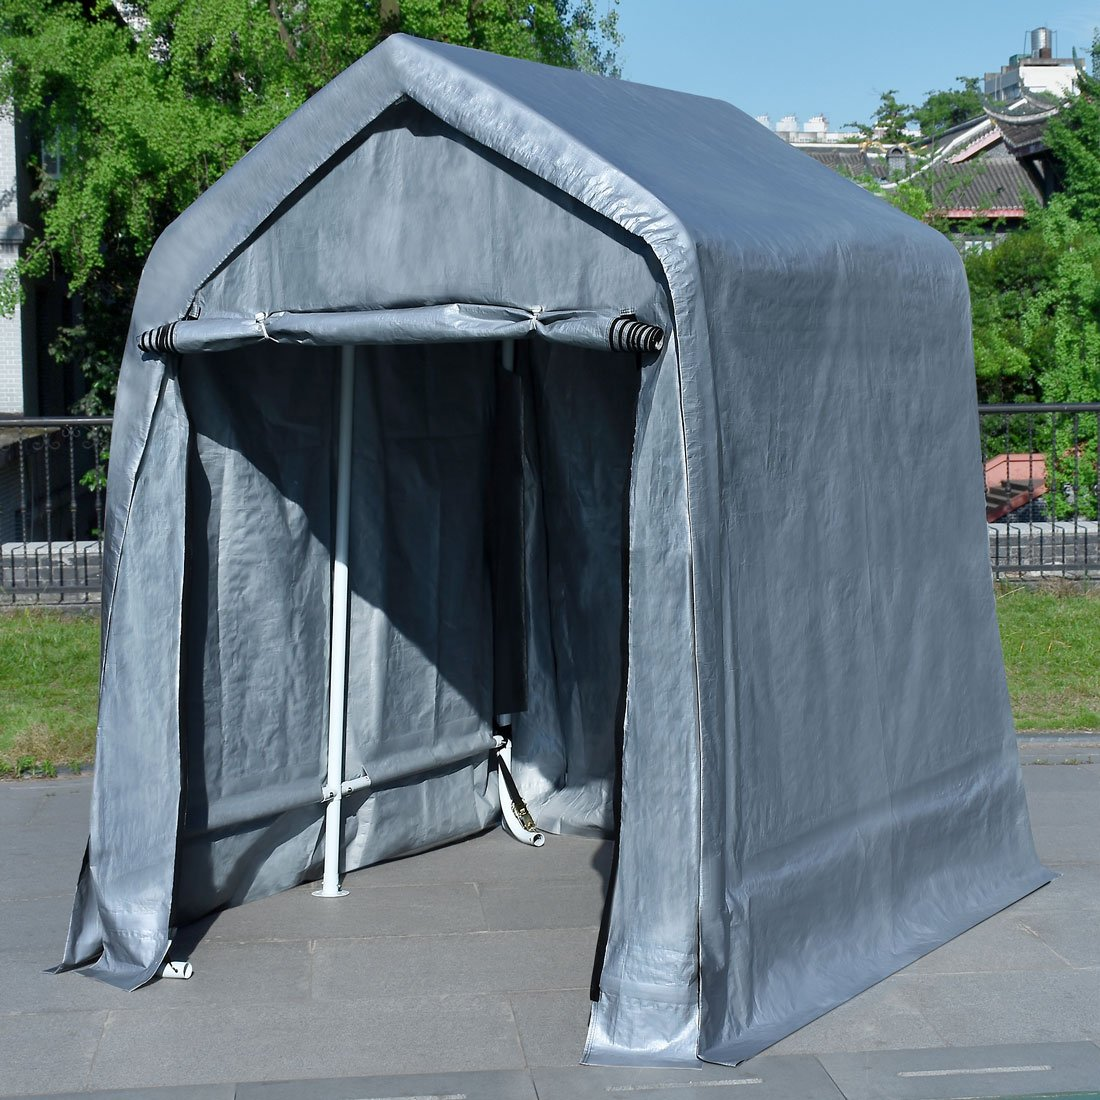 Quictent 6'X6' Heavy Duty Garage Carport ATV Shelter Storage Tent with Auger Anchors and Ratchets for Keeping Lawn Equipment